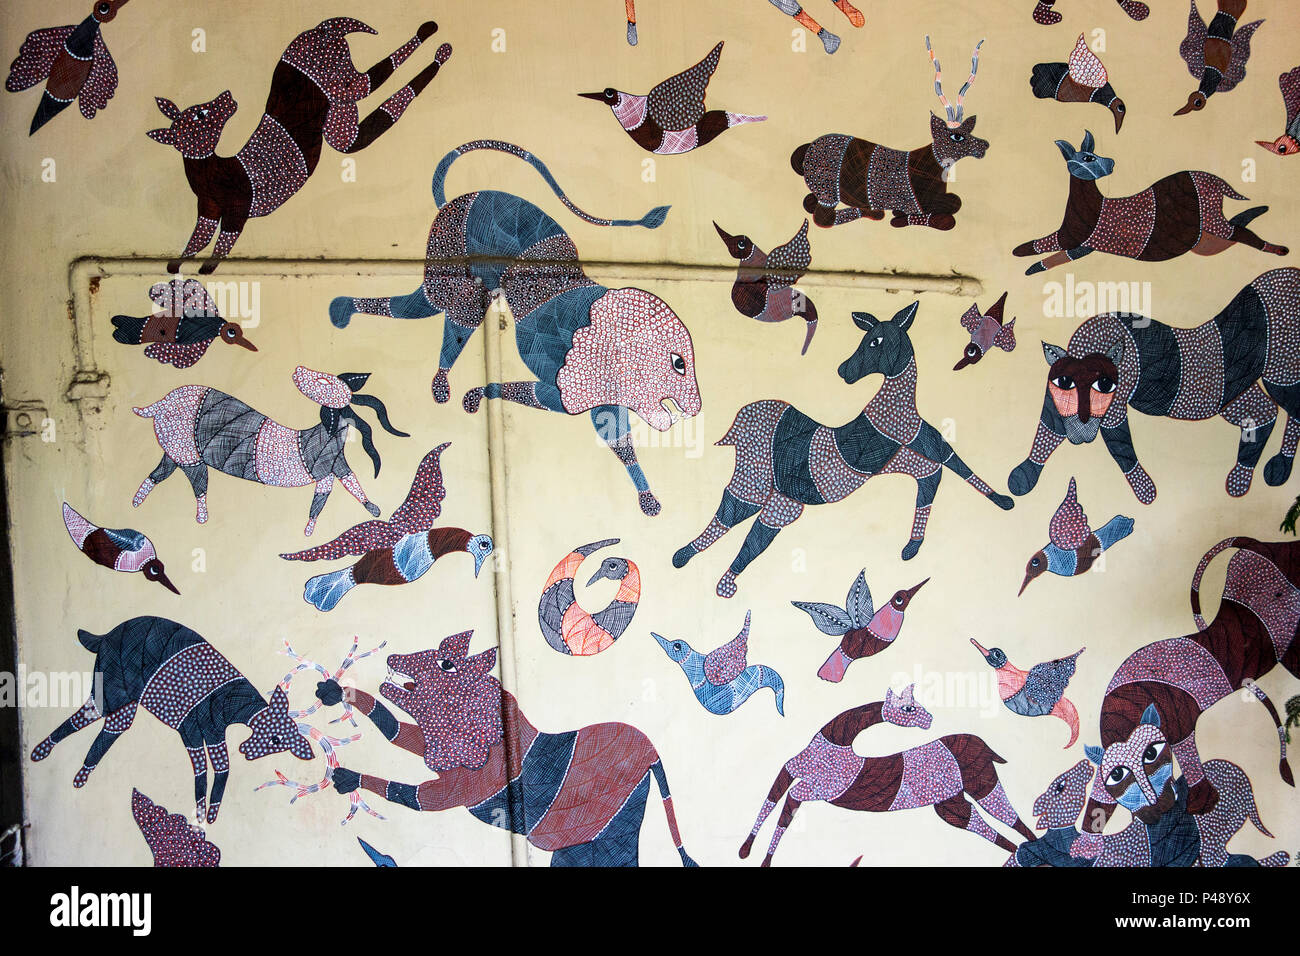 Exhibit of a wall painting with colorful animals in the National Crafts Museum, New Delhi, India - Stock Image